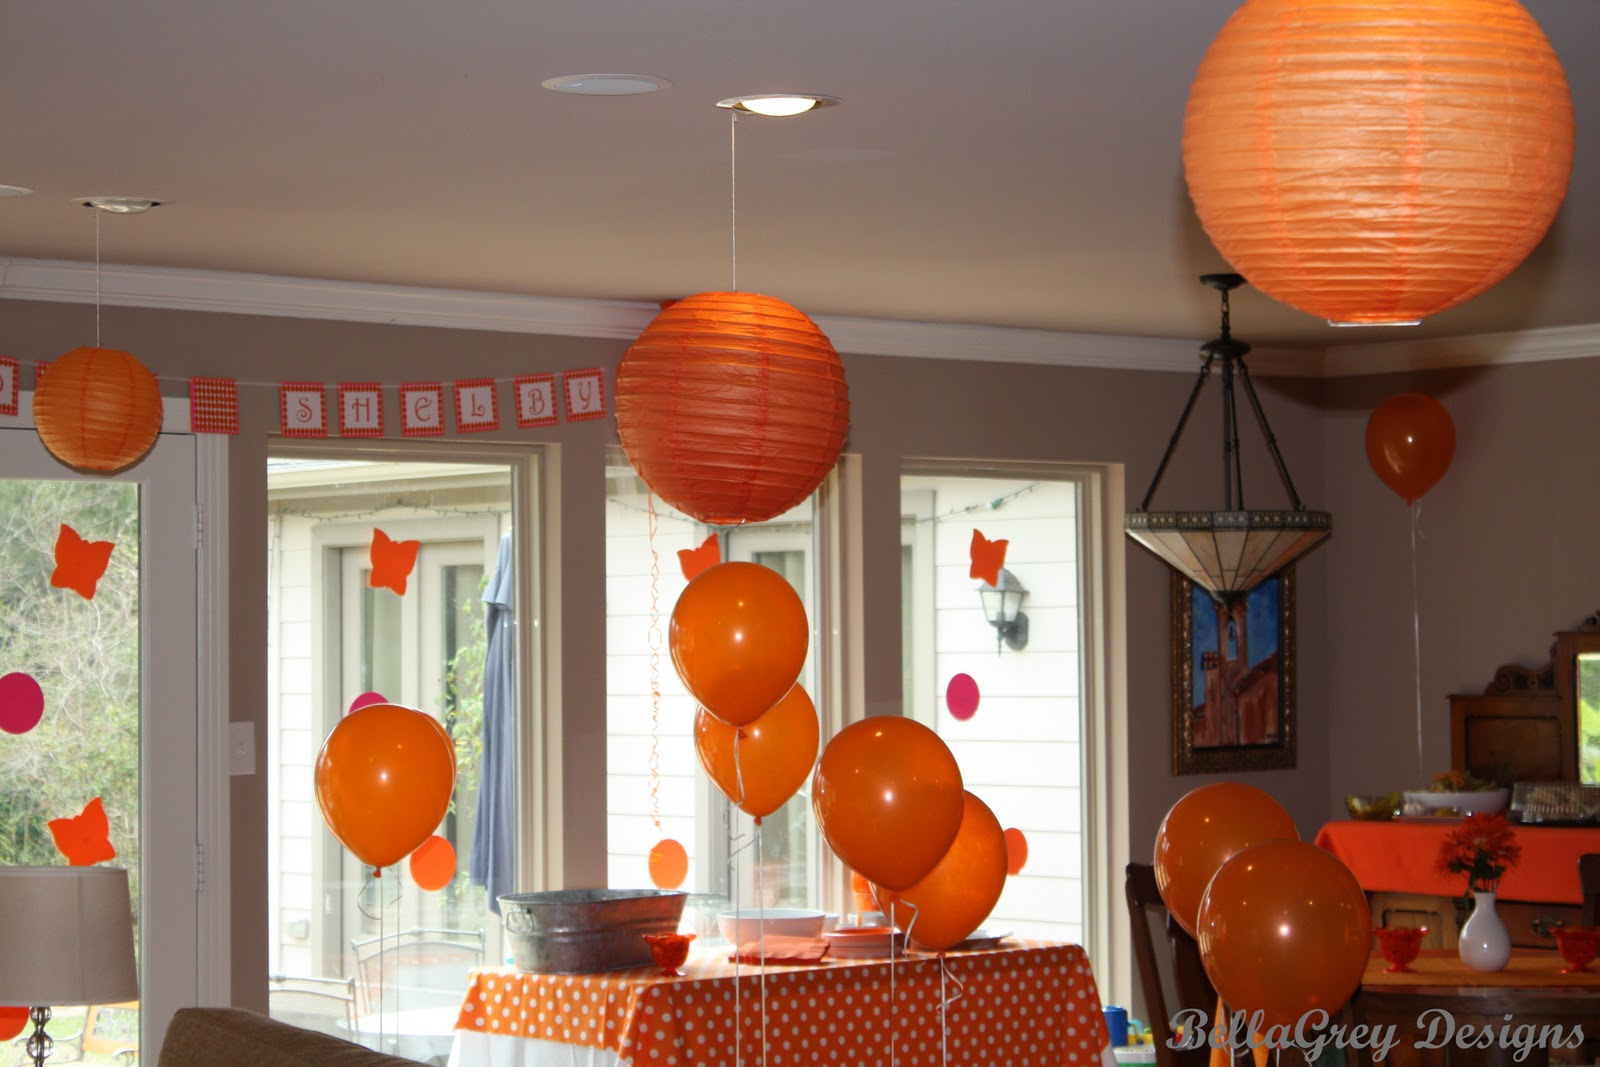 BellaGrey Designs: Real Party ~ A Sweet Third Birthday Party